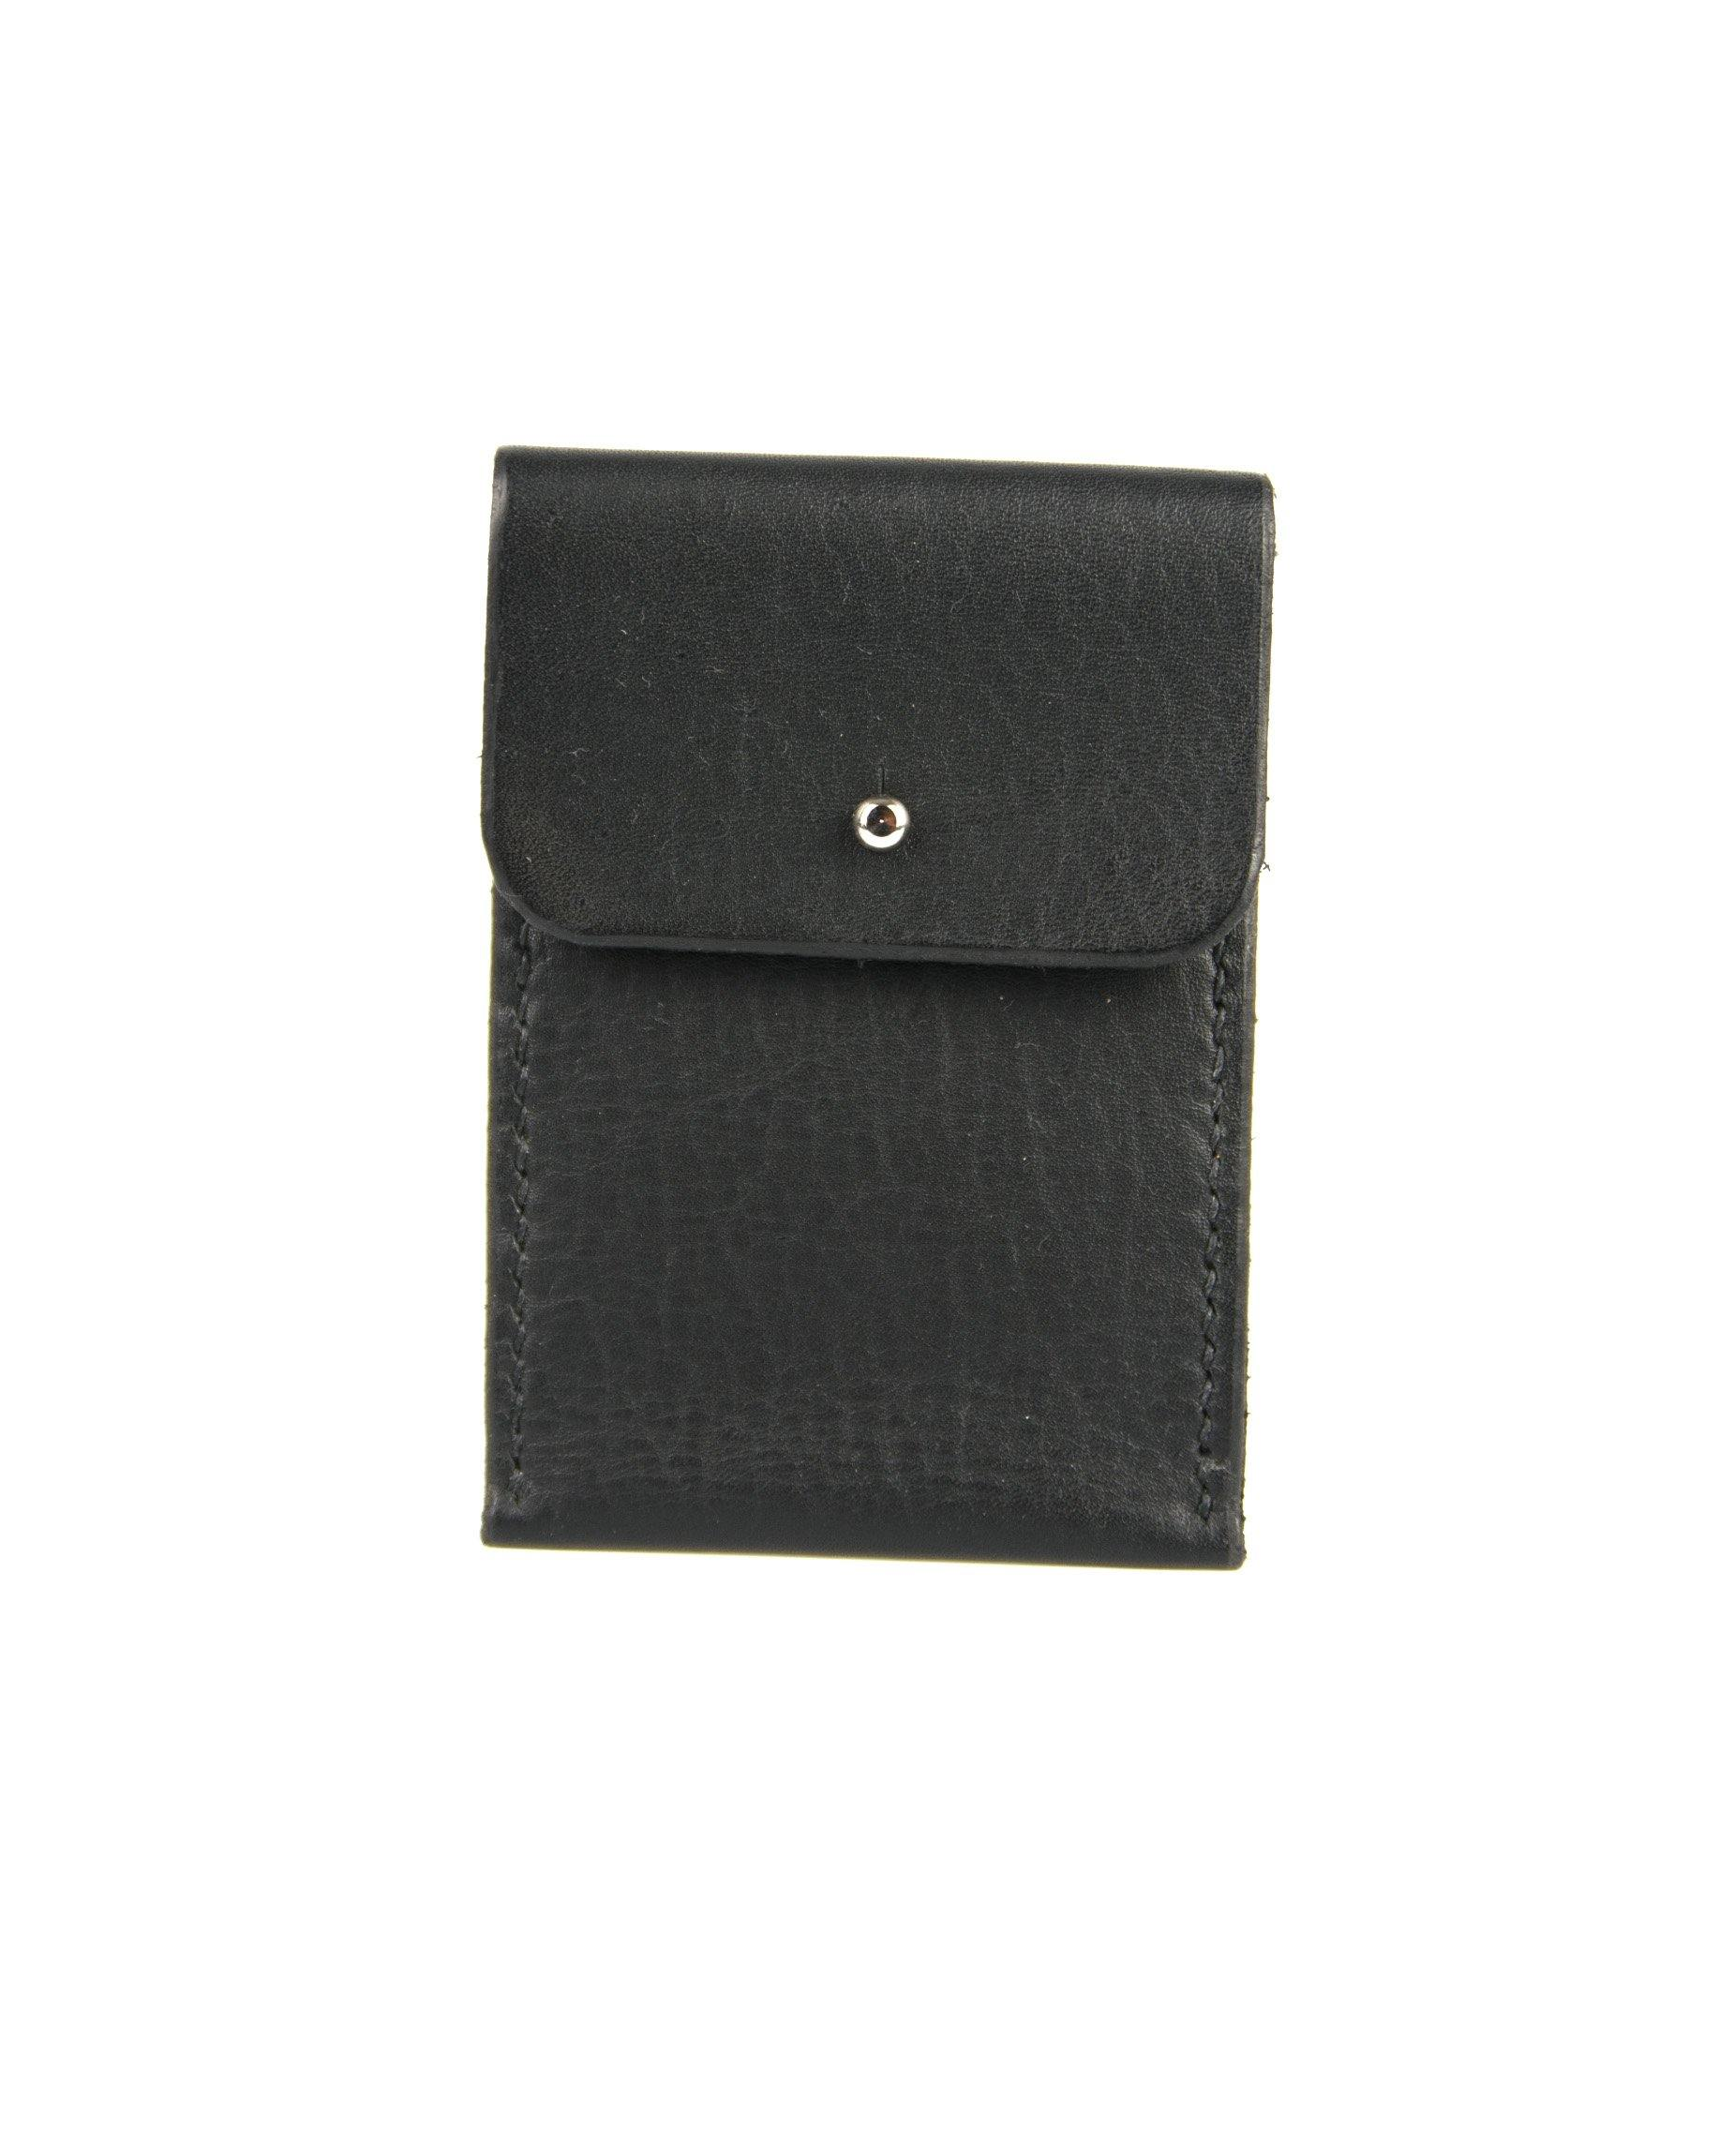 Coin Wallet - Black - Debonair